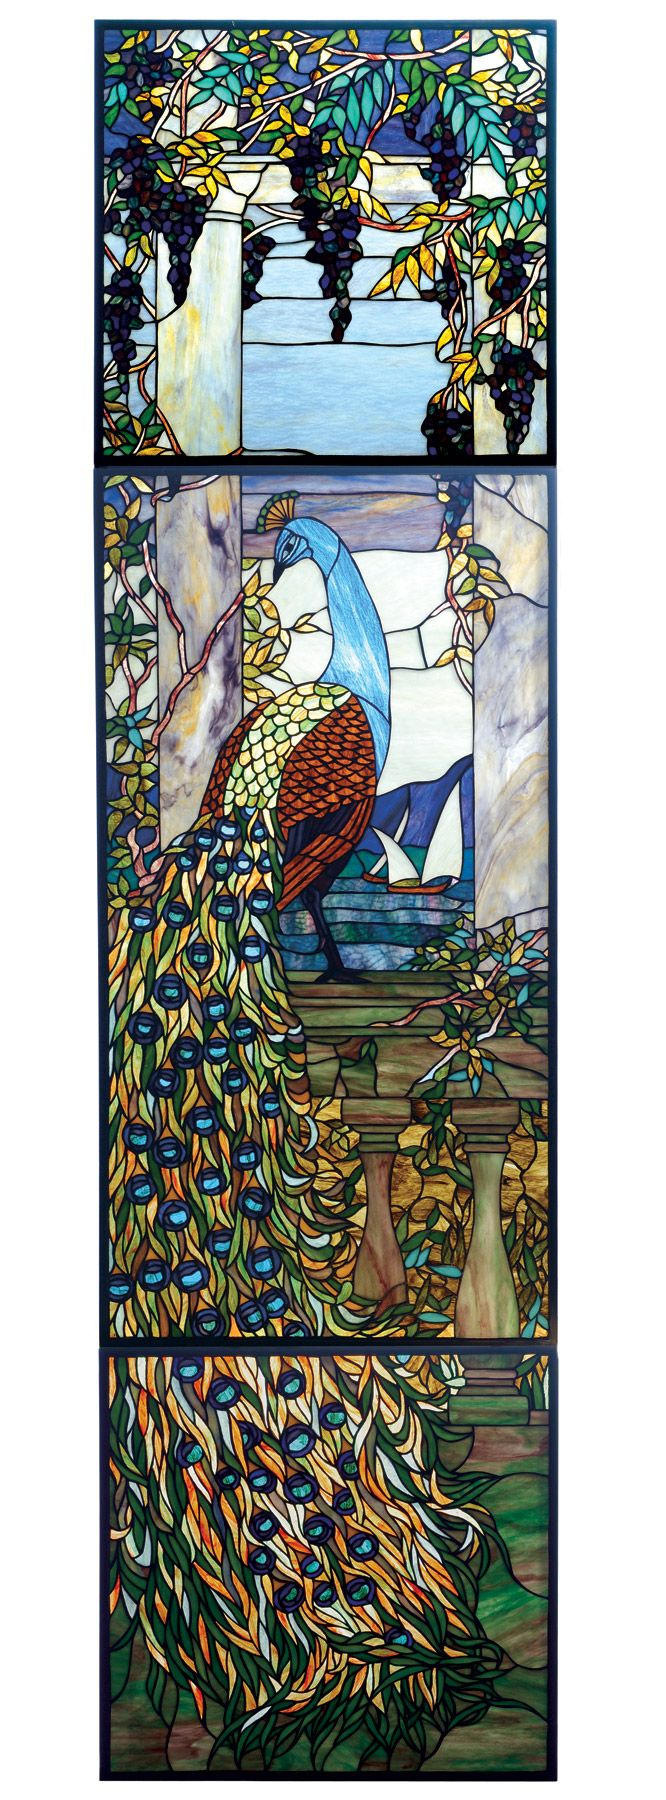 Franklin art glass studios inc clear cotswold glass 3 320 - Tiffany Stained Glass Meyda 77549 Tiffany Peacock Stained Glass Window